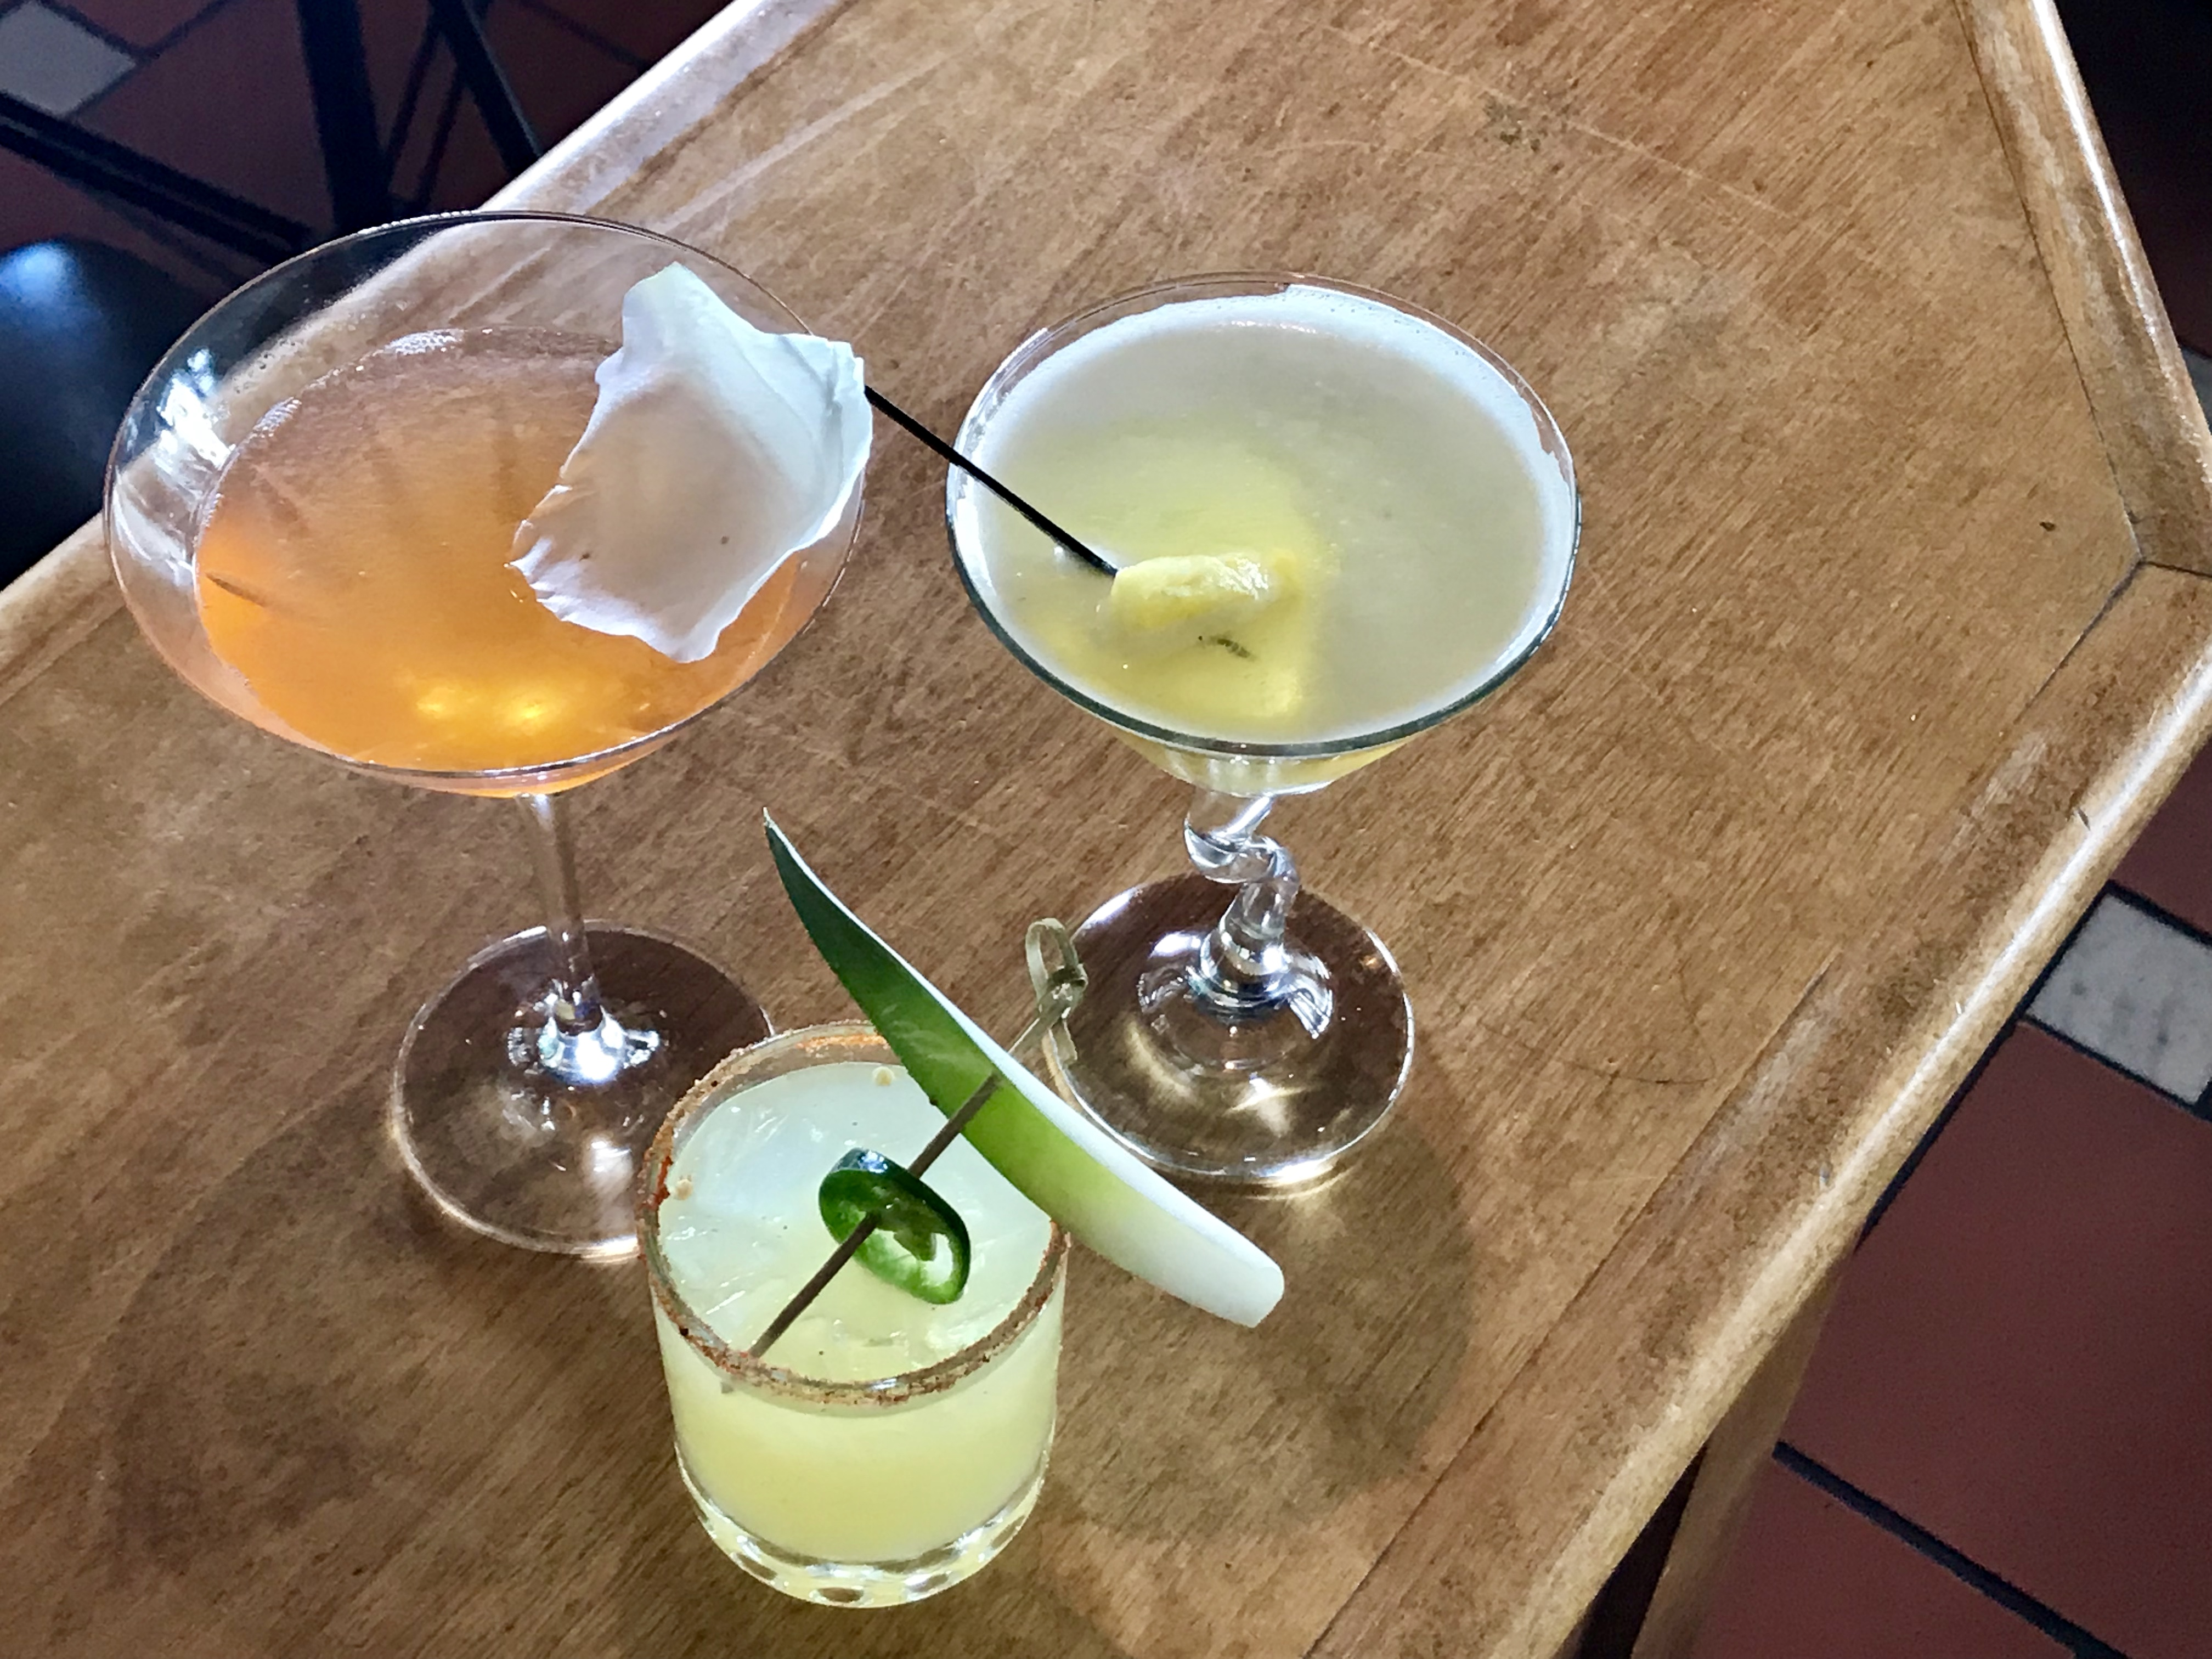 Enjoy these cocktails at the 2018 Bachelor Casting Call, which takes place Thursday, June 21 at Pacific Place in downtown Seattle.{&amp;nbsp;}<p></p>